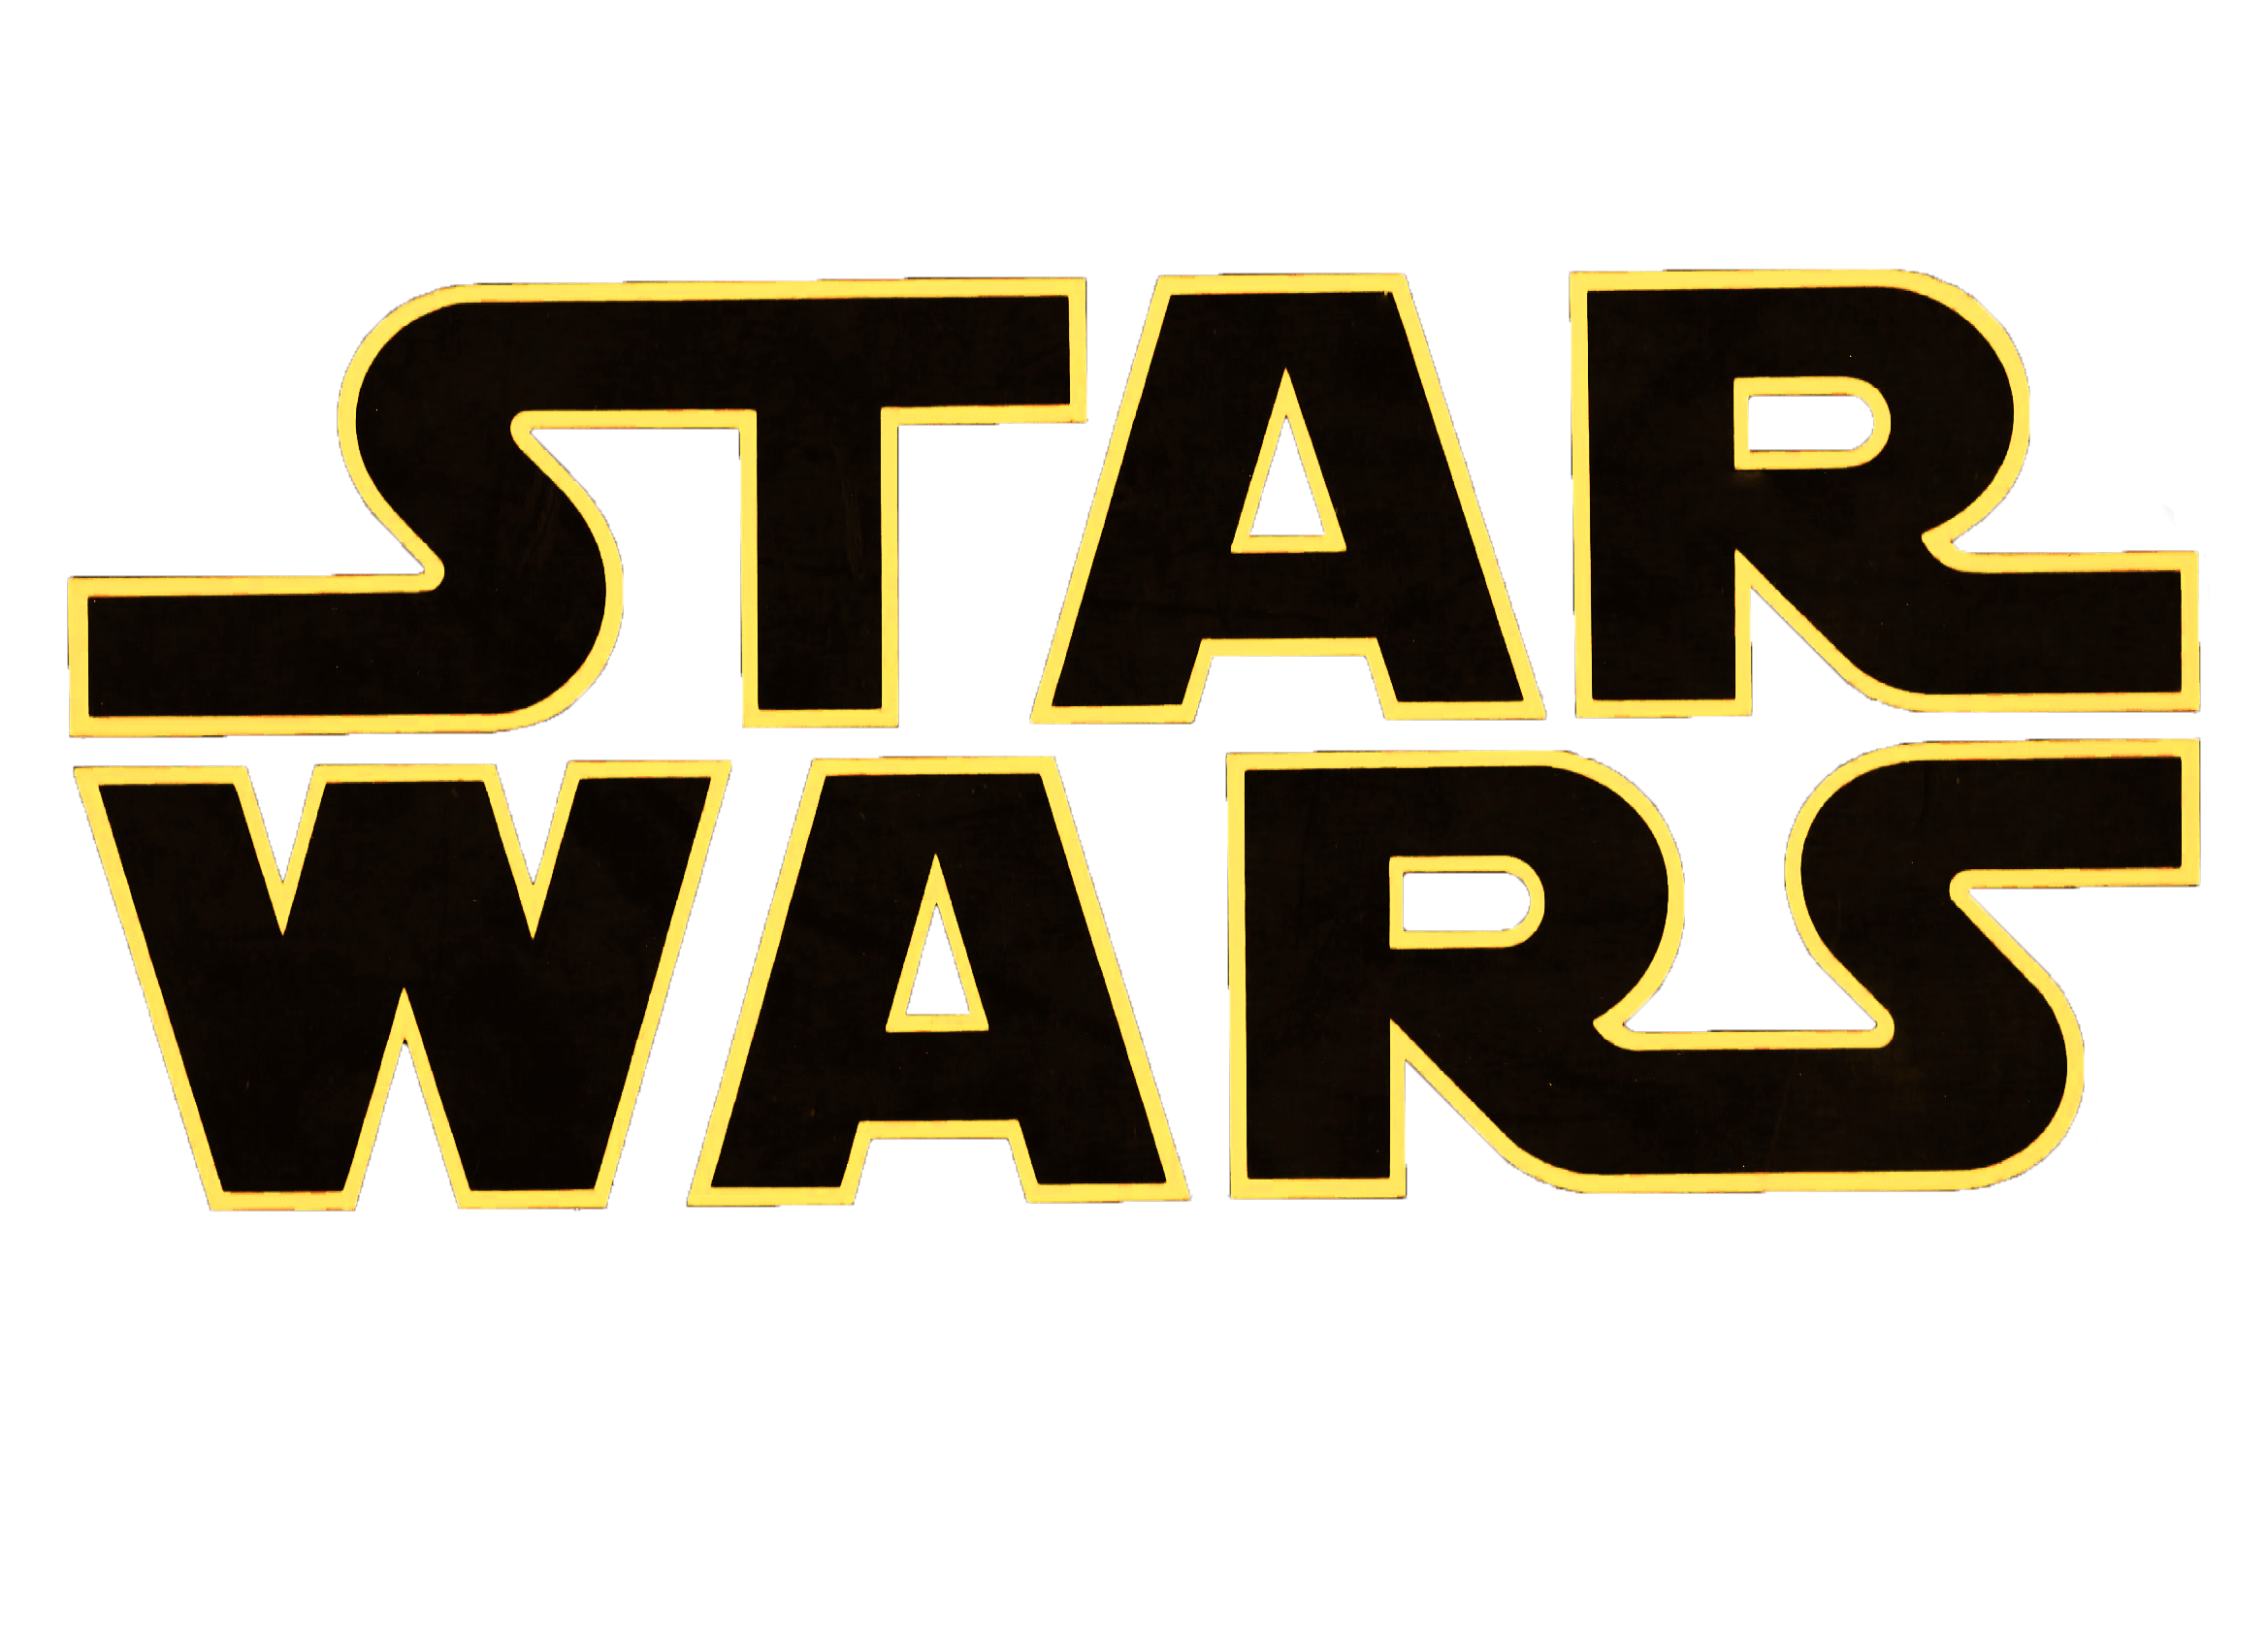 Star Wars Logo Png Image 46070 Free Icons And Png Backgrounds